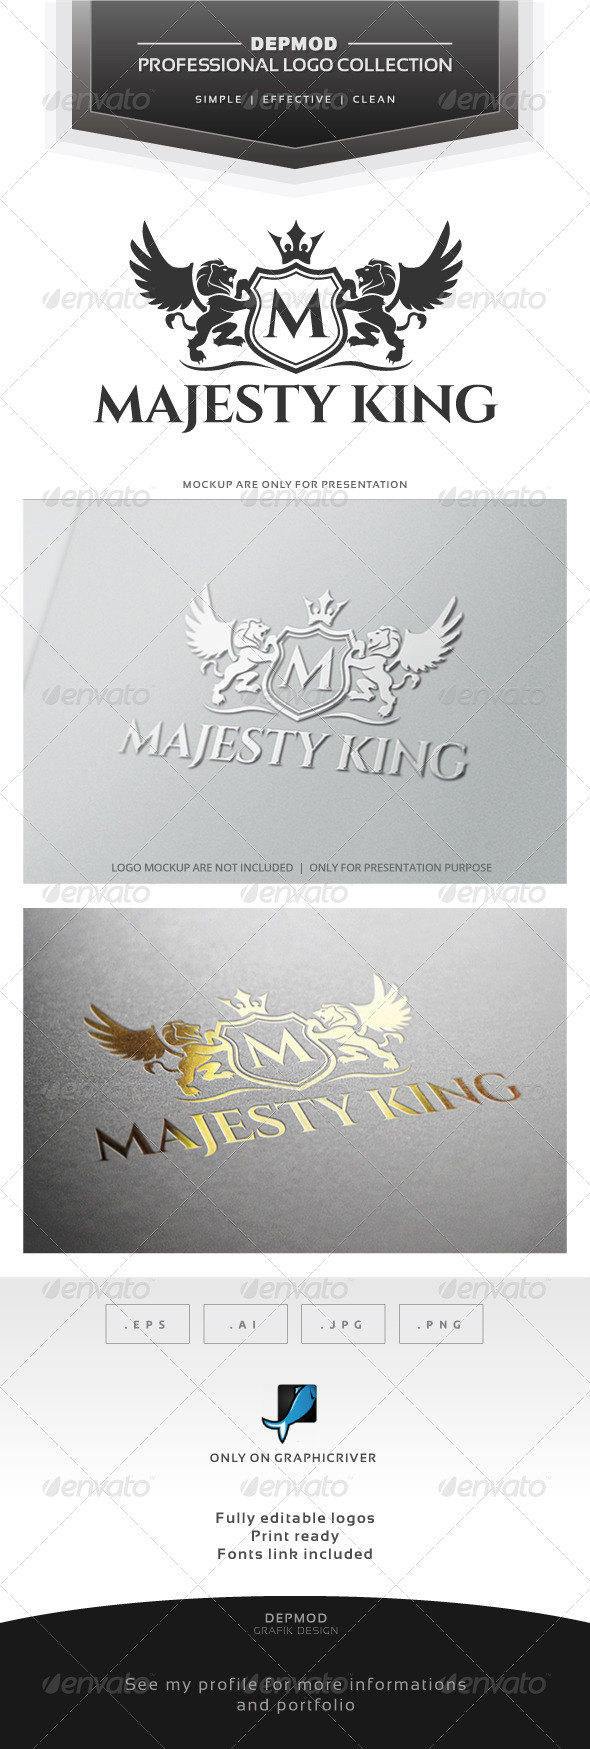 GraphicRiver Majesty King V.02 Logo 7139410